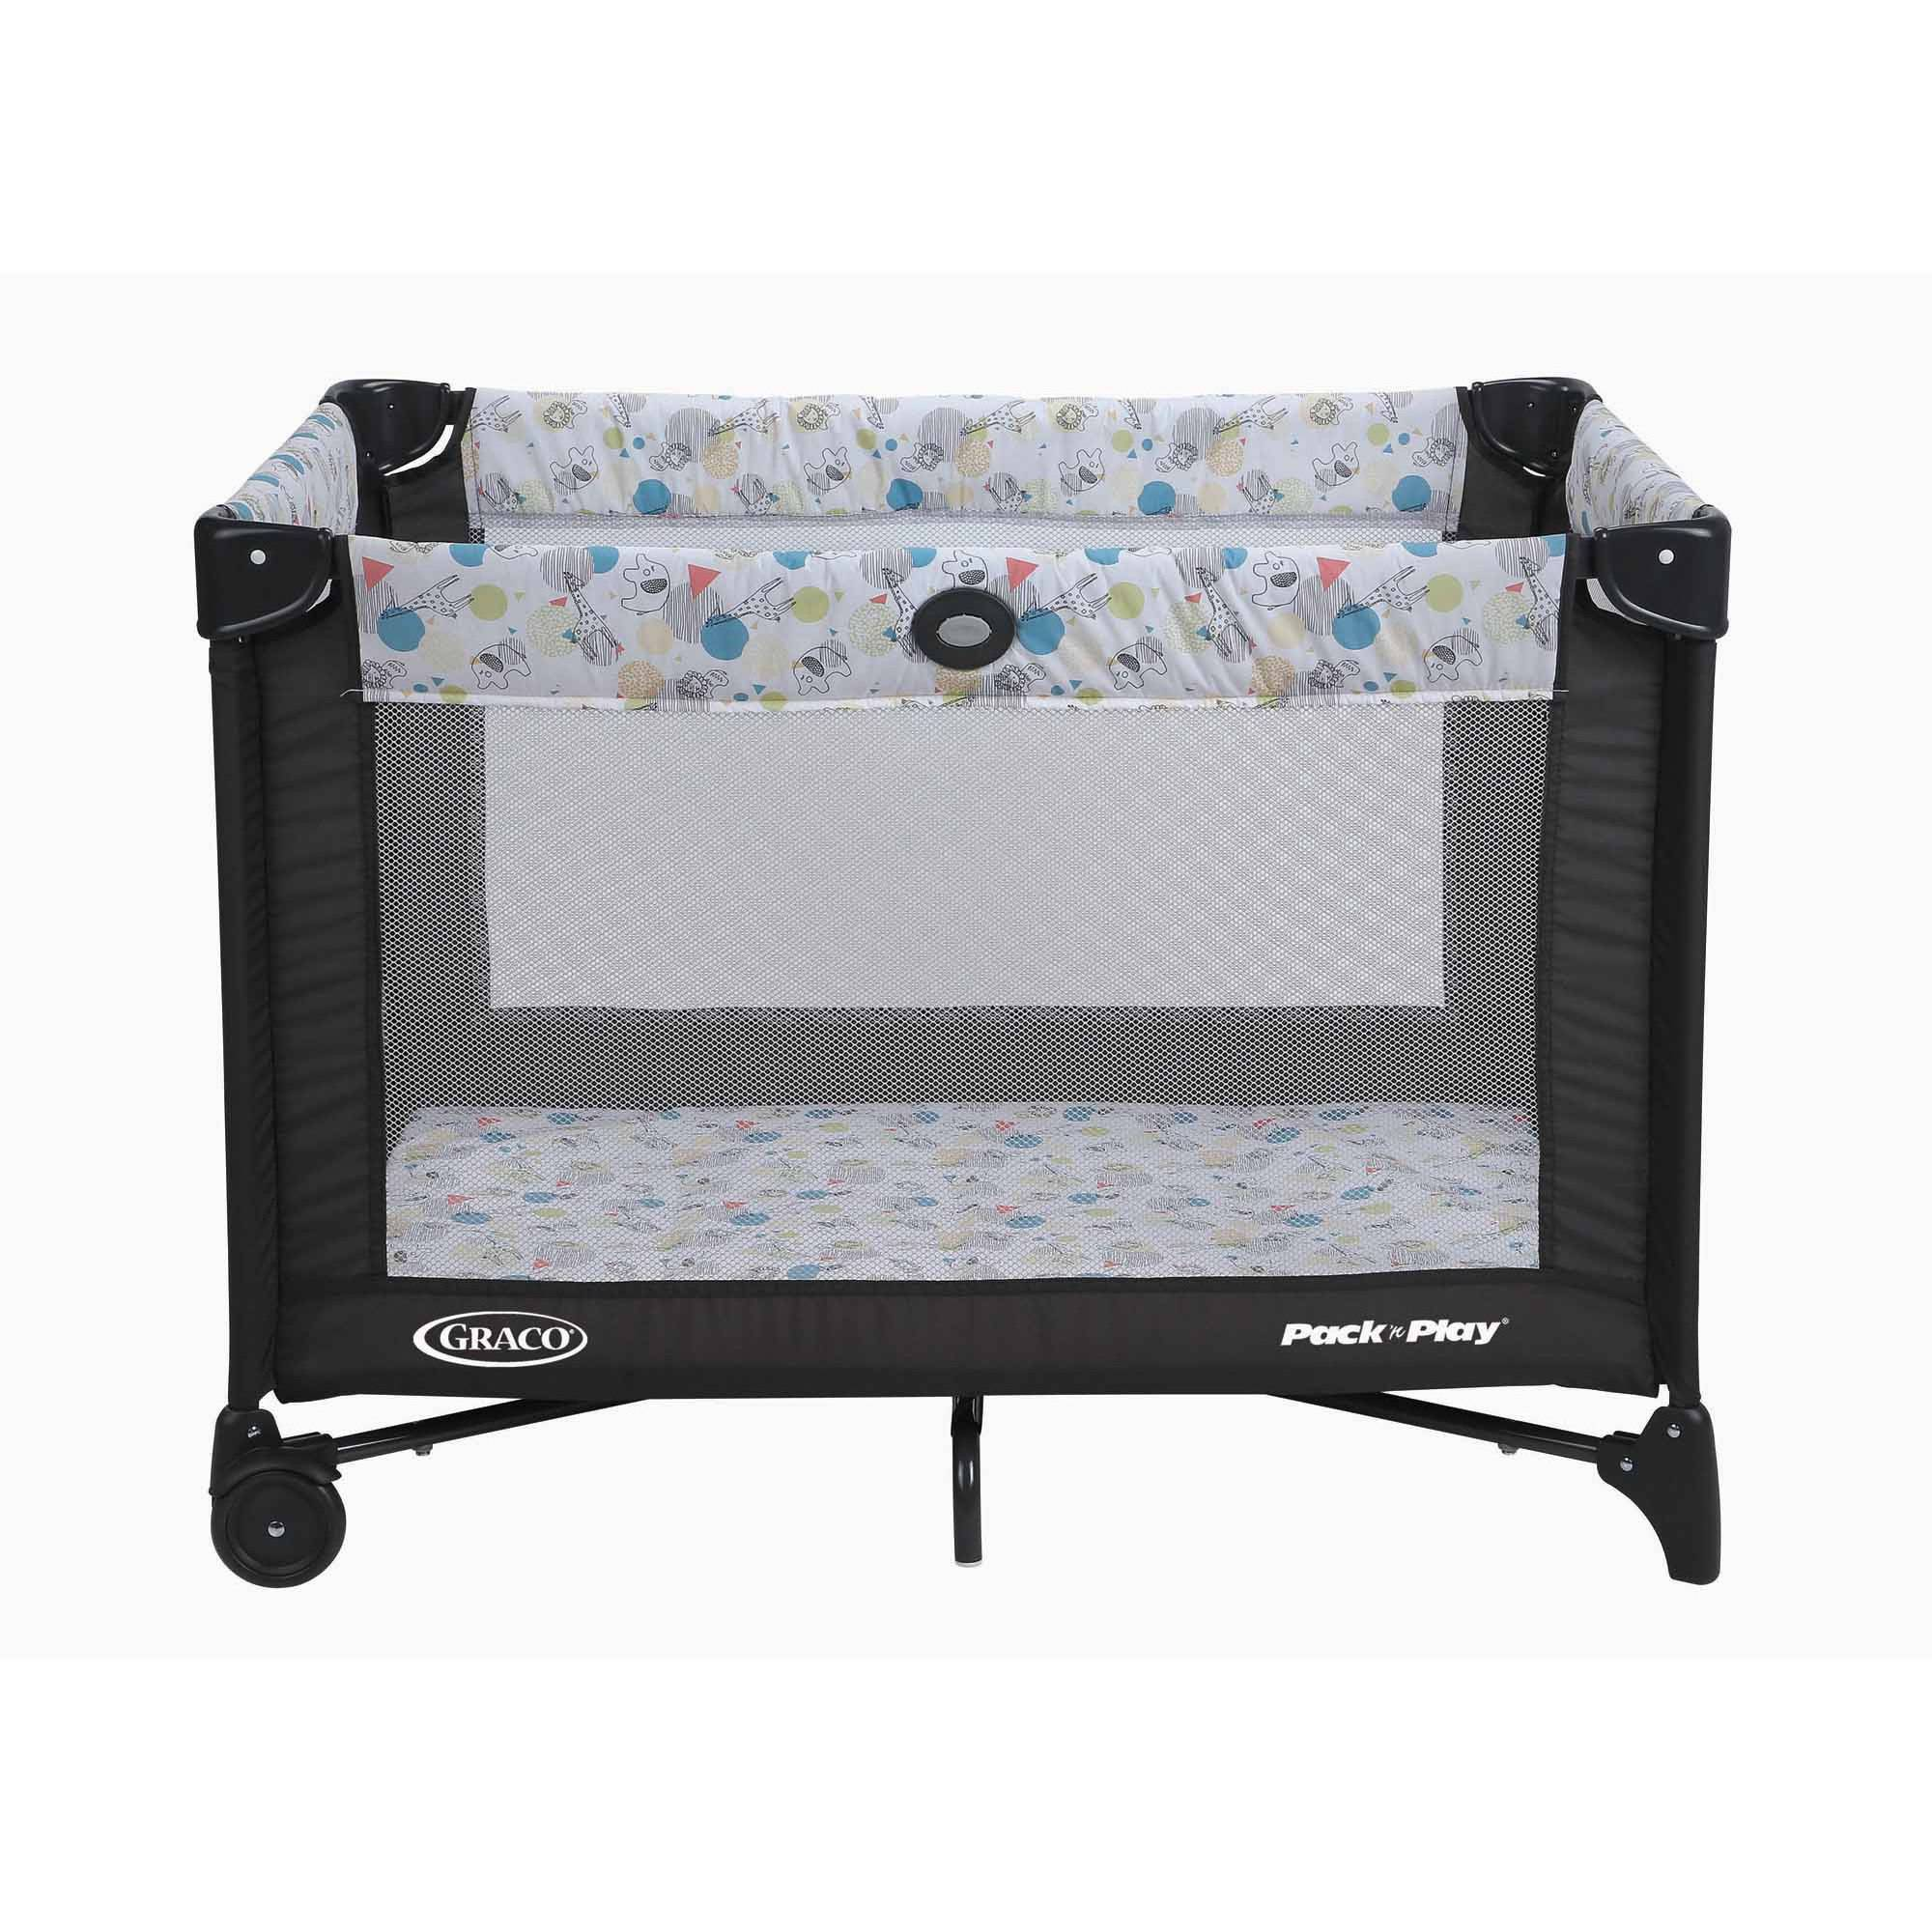 Graco Pack N Play Portable Playard Carnival Portable Charger Cost Portable Radio With Excellent Fm Reception Portable Washer Ratings: Graco Pack N Play Playard Baby Play Yard Crib Playpen